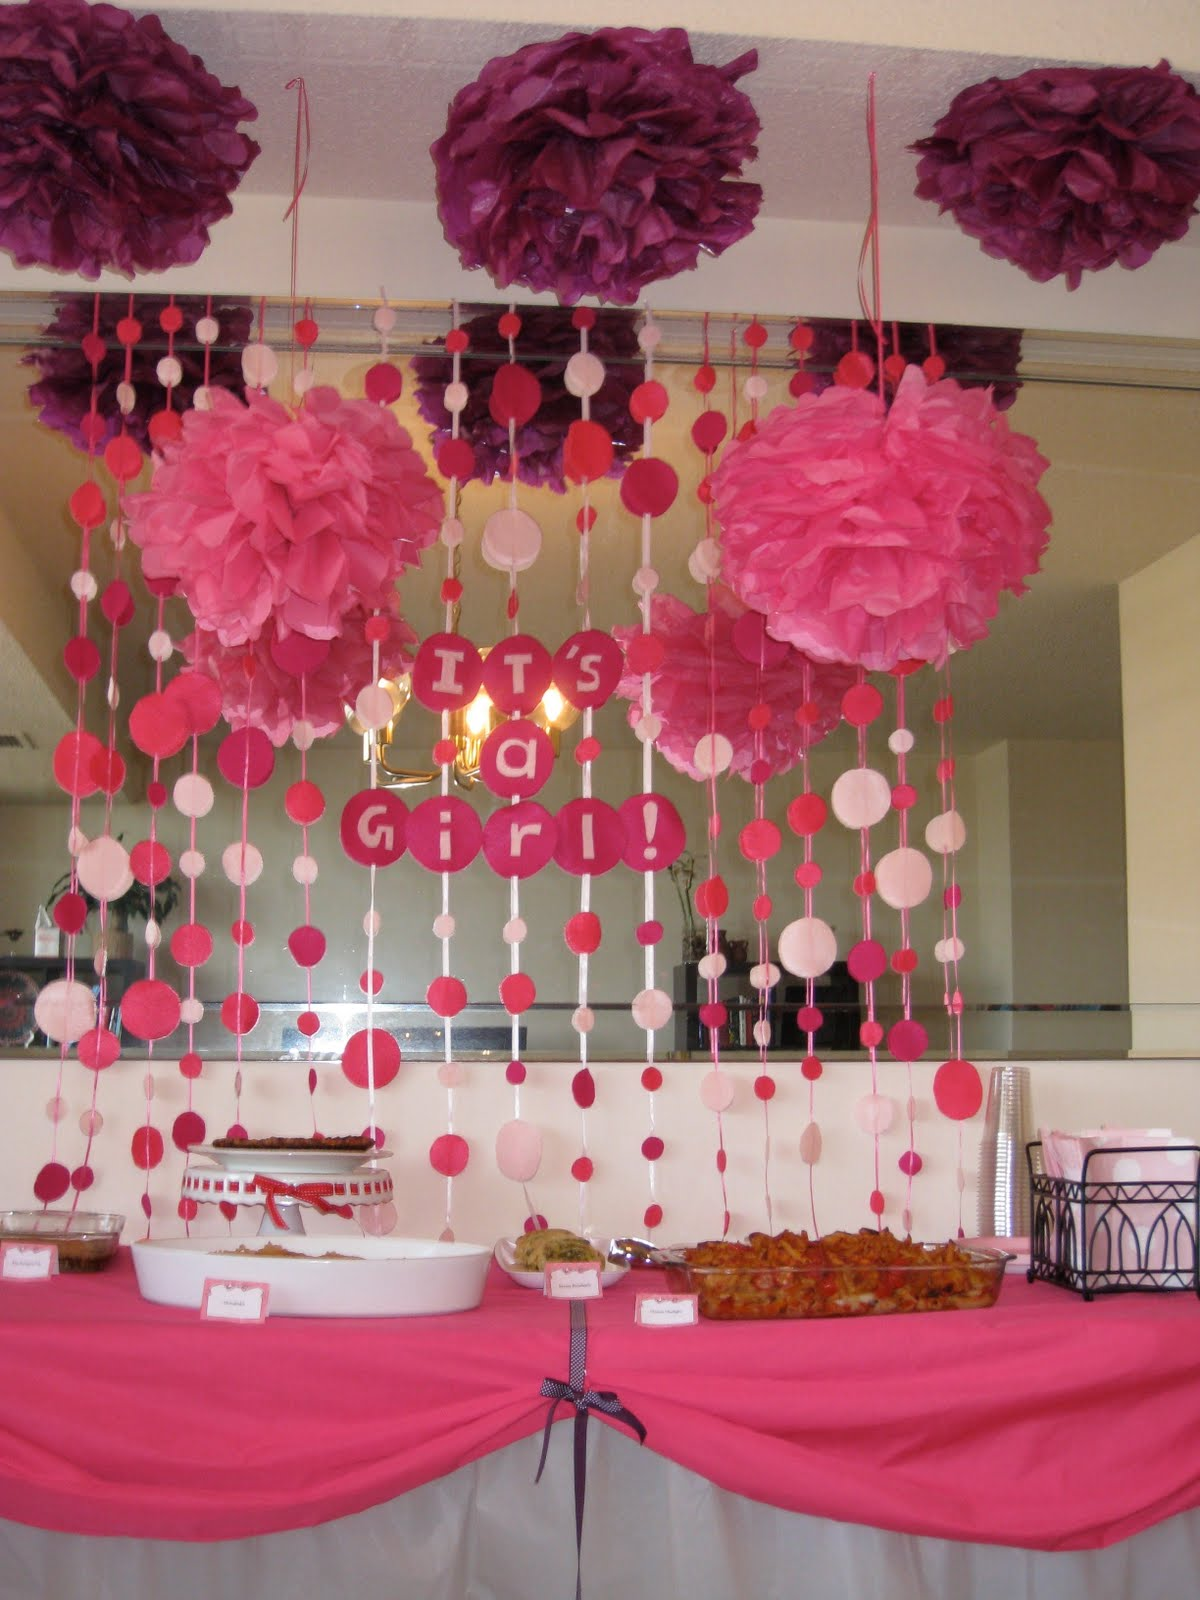 Baby shower food ideas baby shower ideas for a girl for Baby shower decoration kits girl